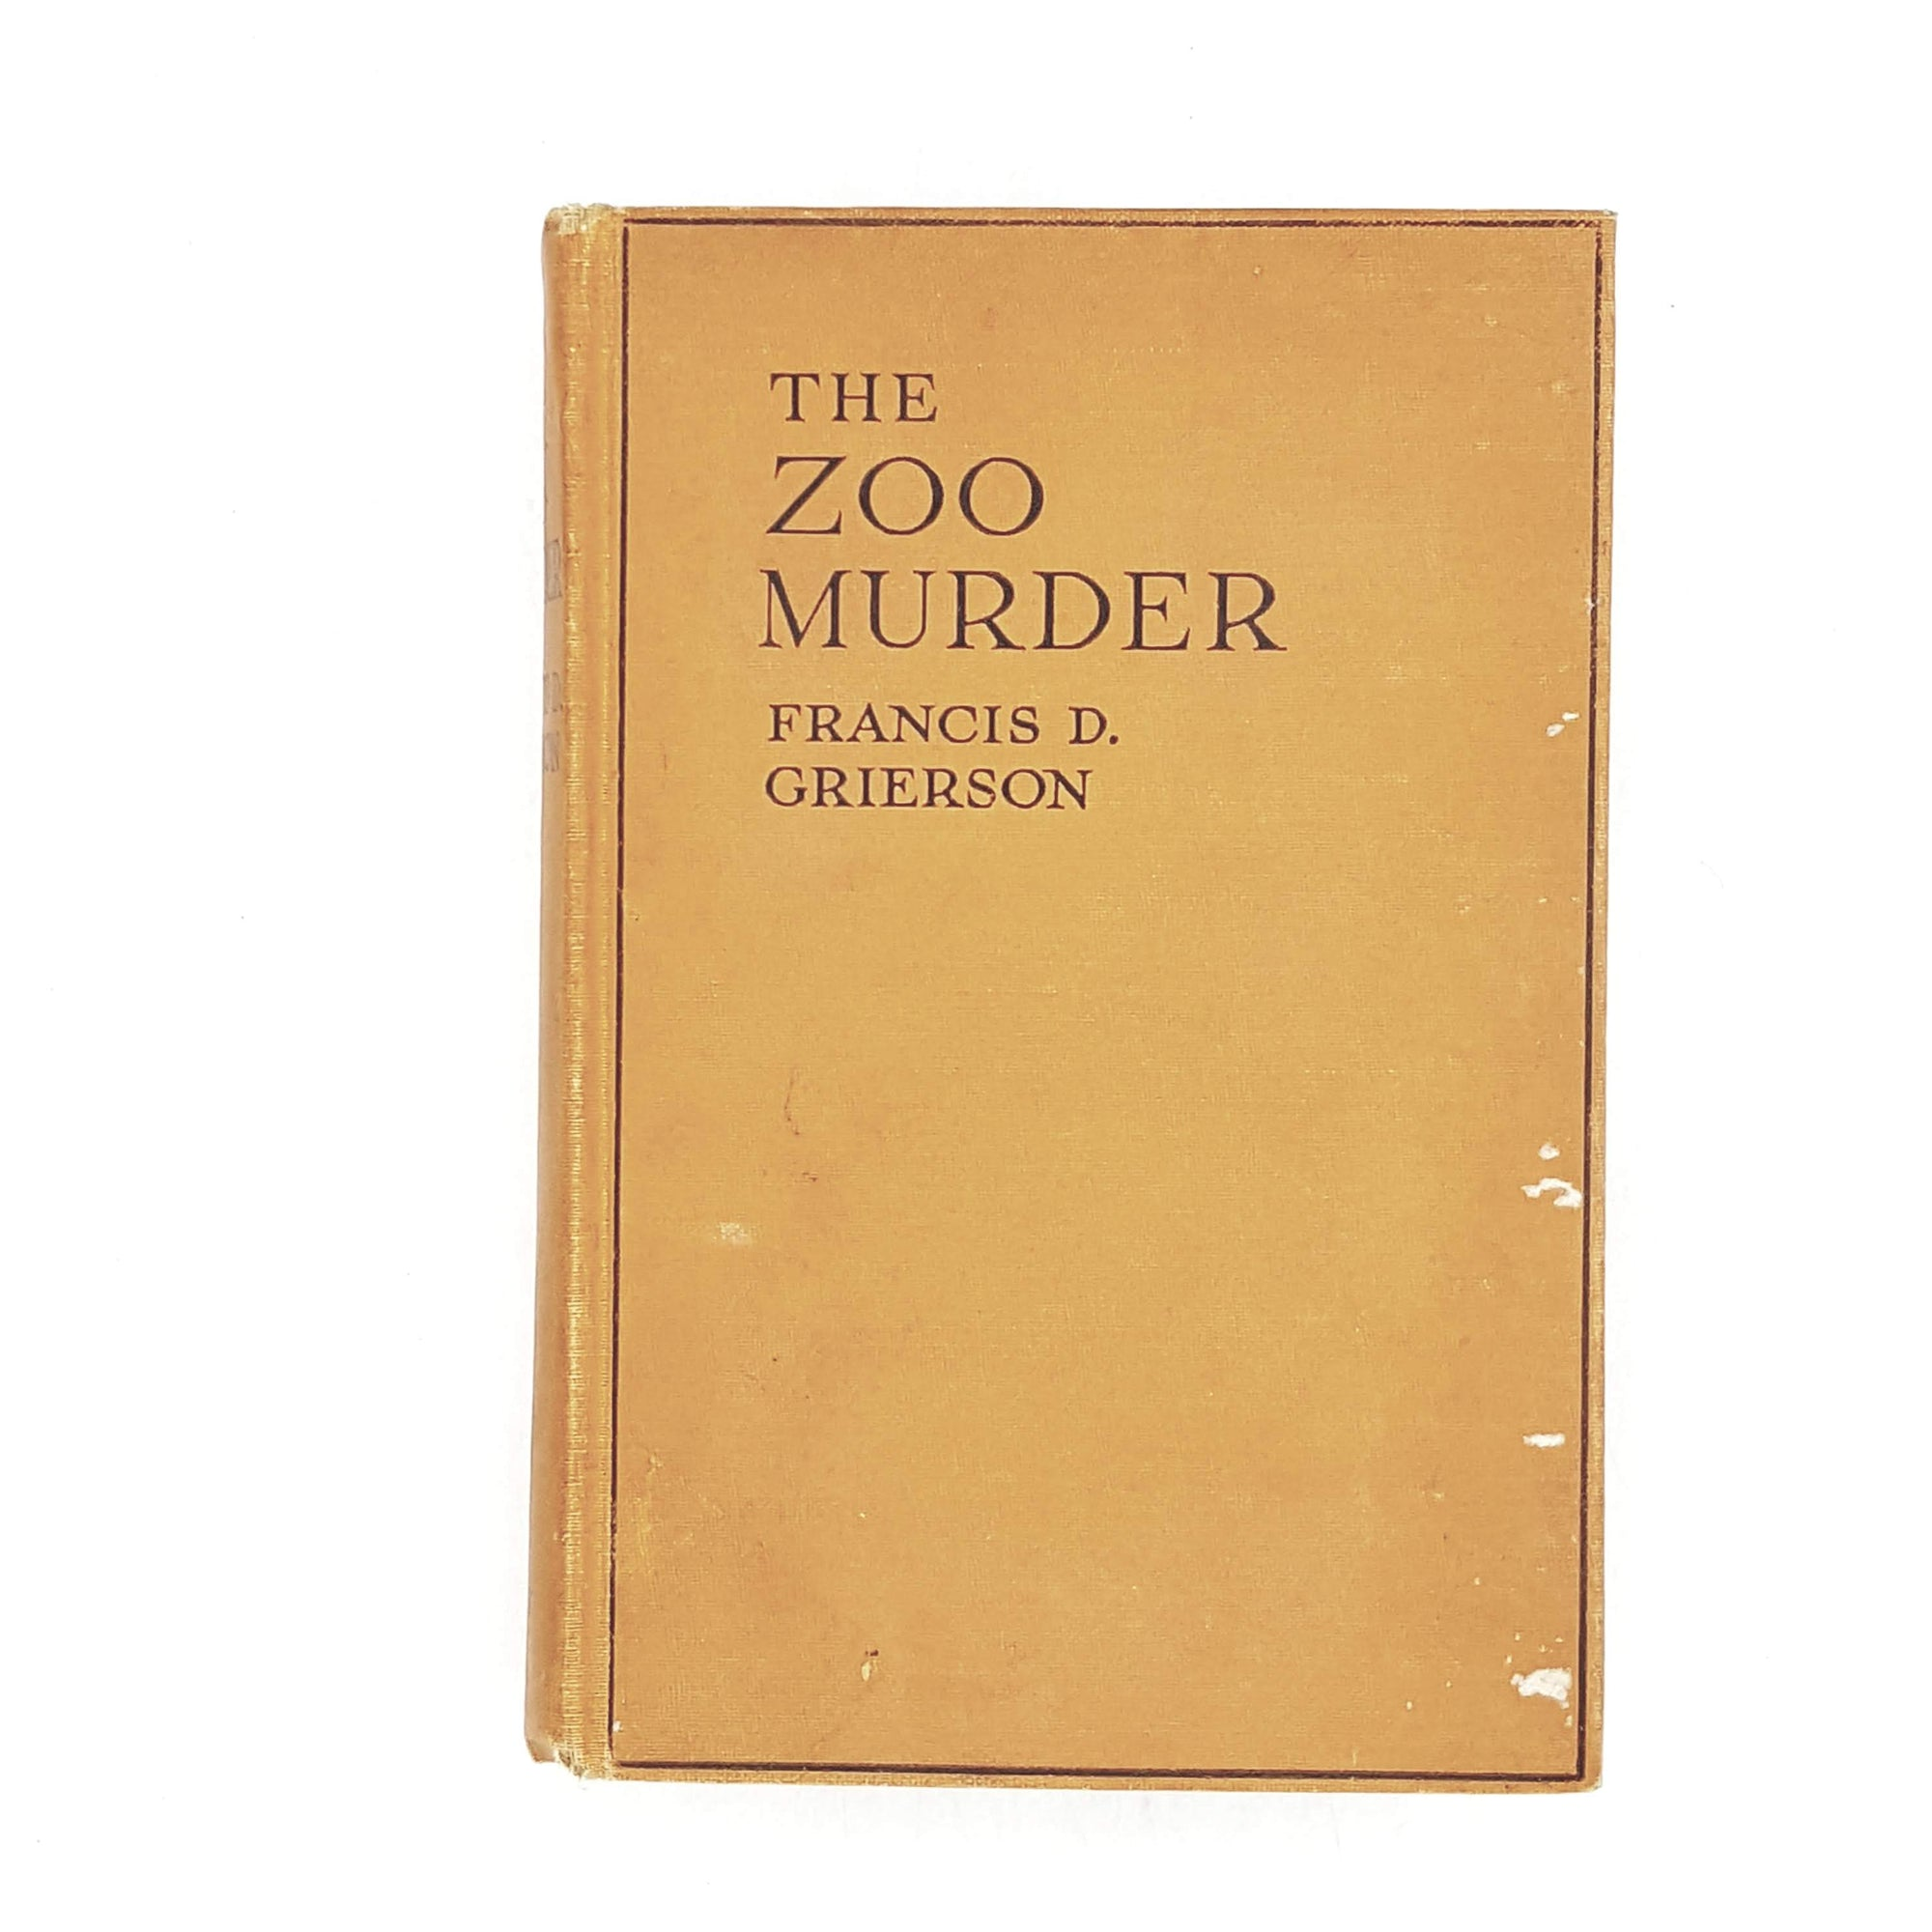 The Zoo Murder by Francis D. Grierson 1926